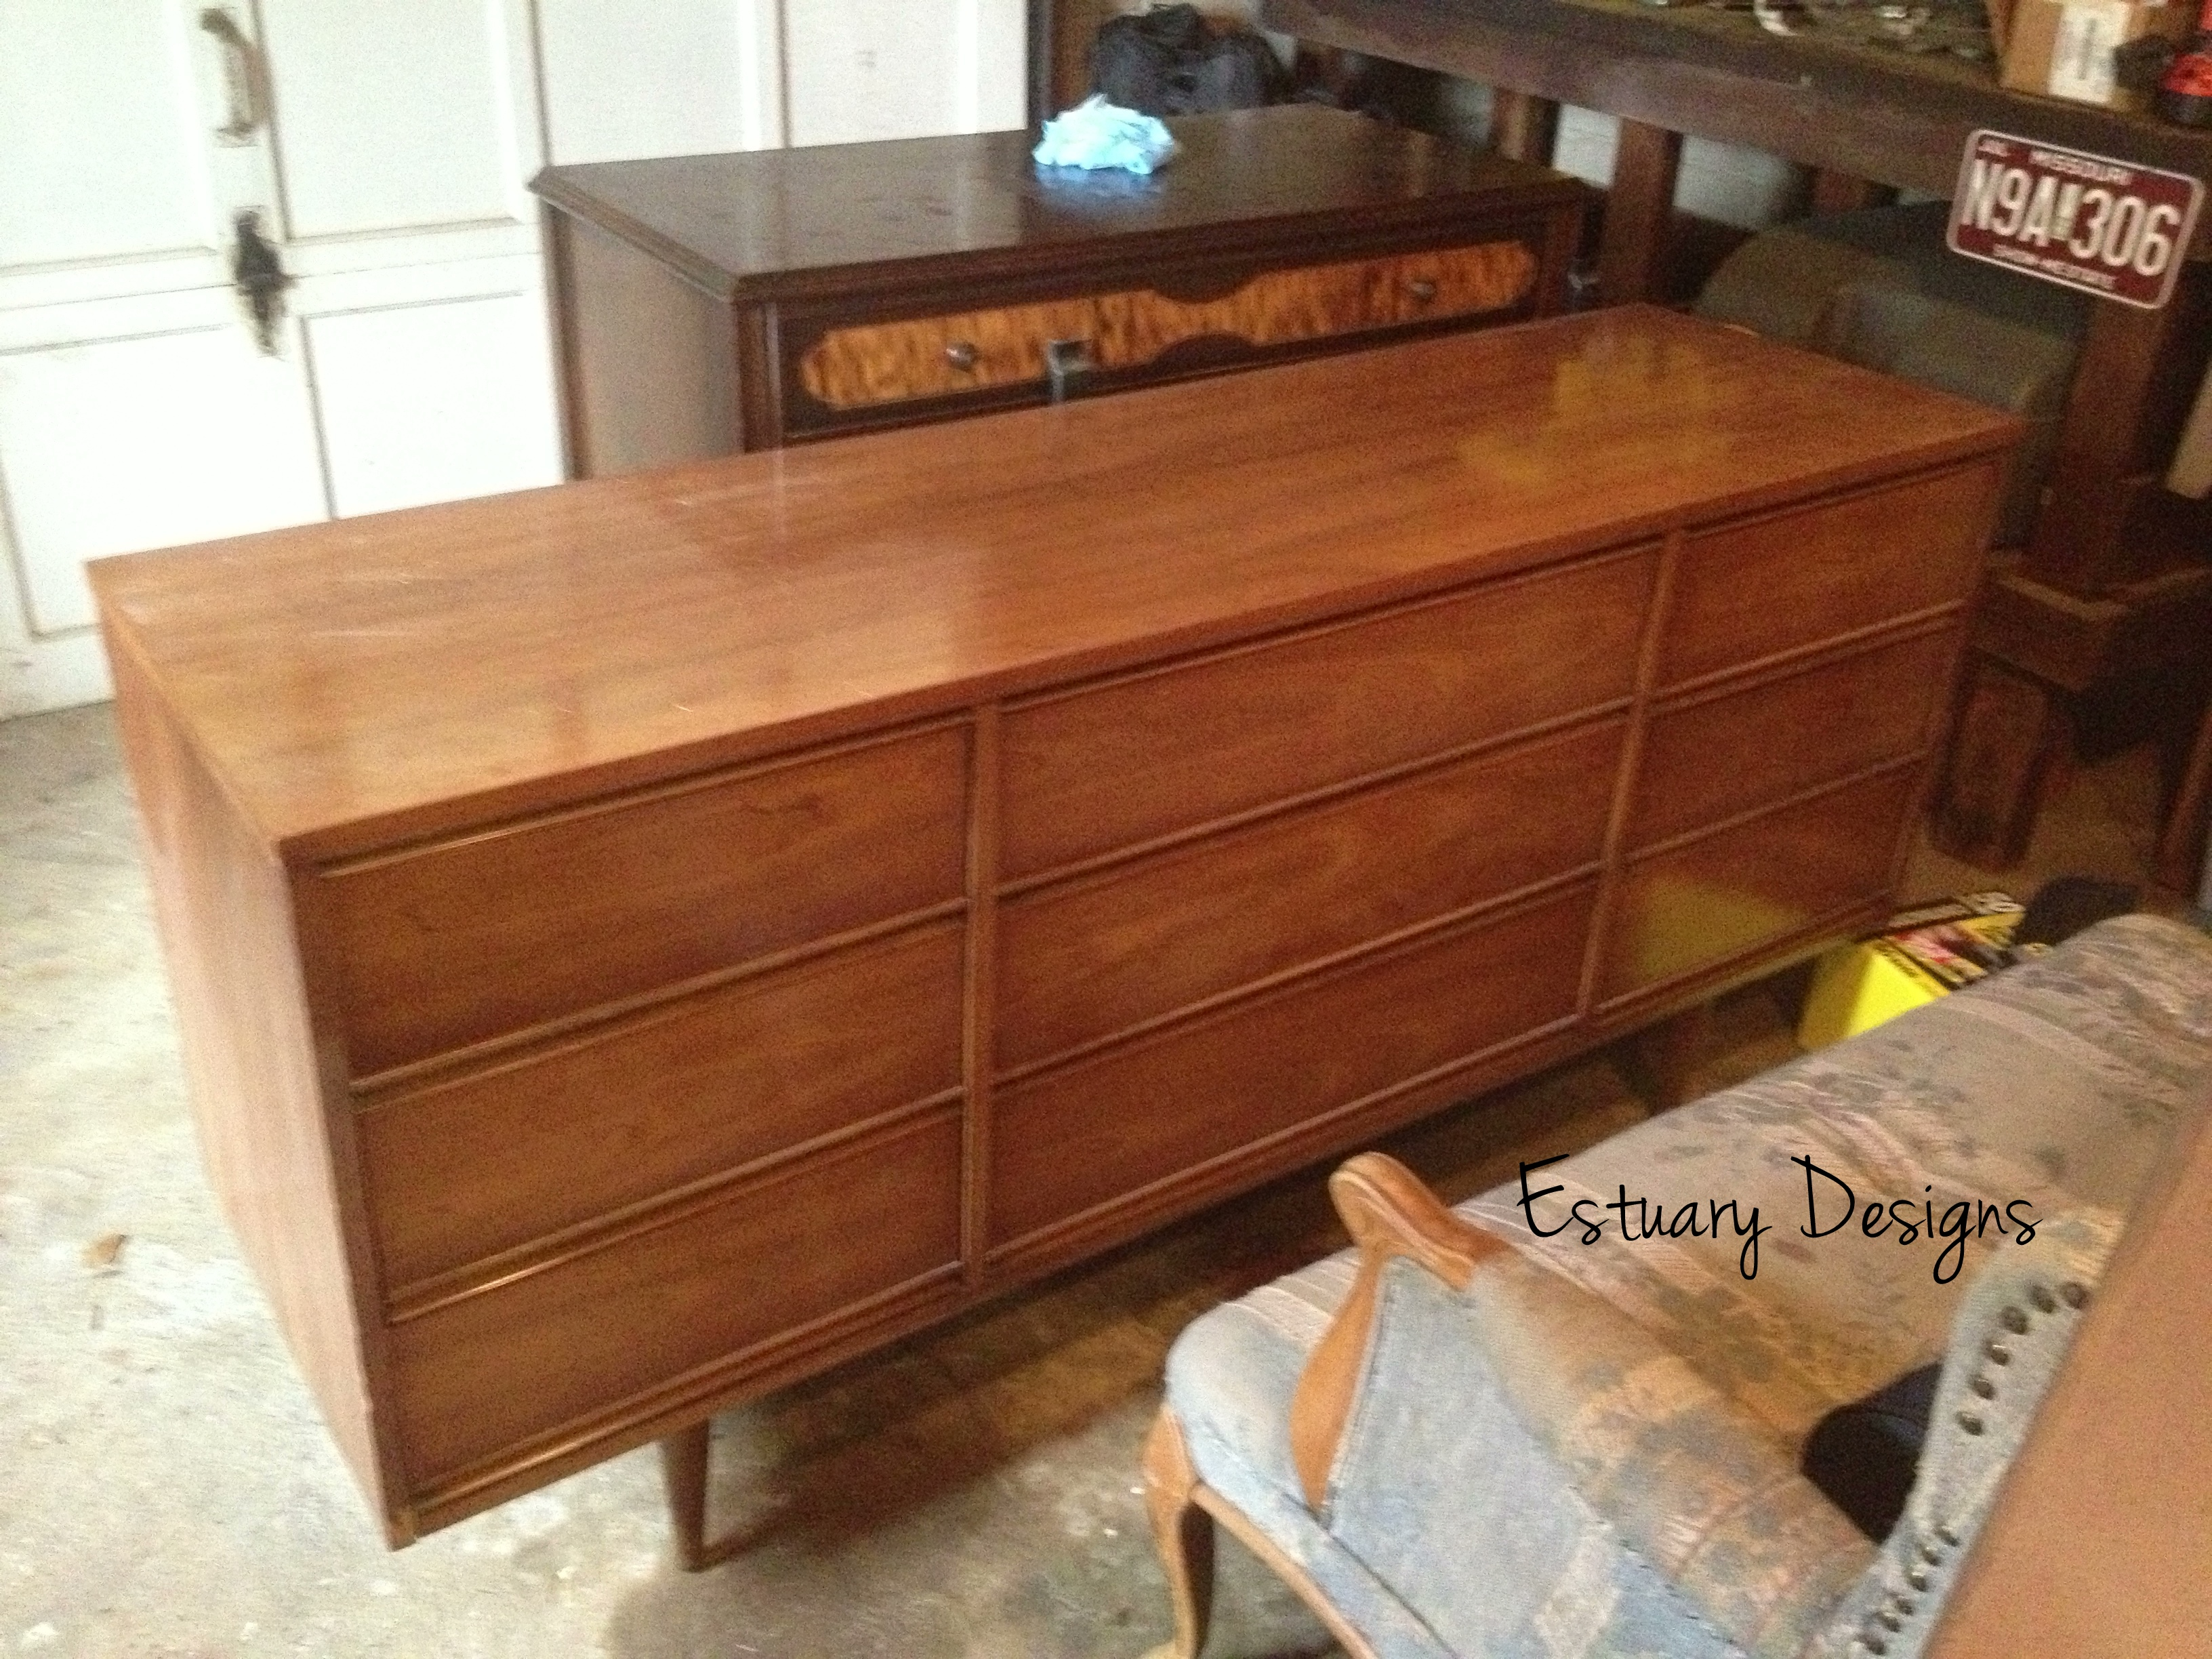 mid century wood dresser Furniture Debut: Mid Century Modern Dresser   Estuary Designs mid century wood dresser